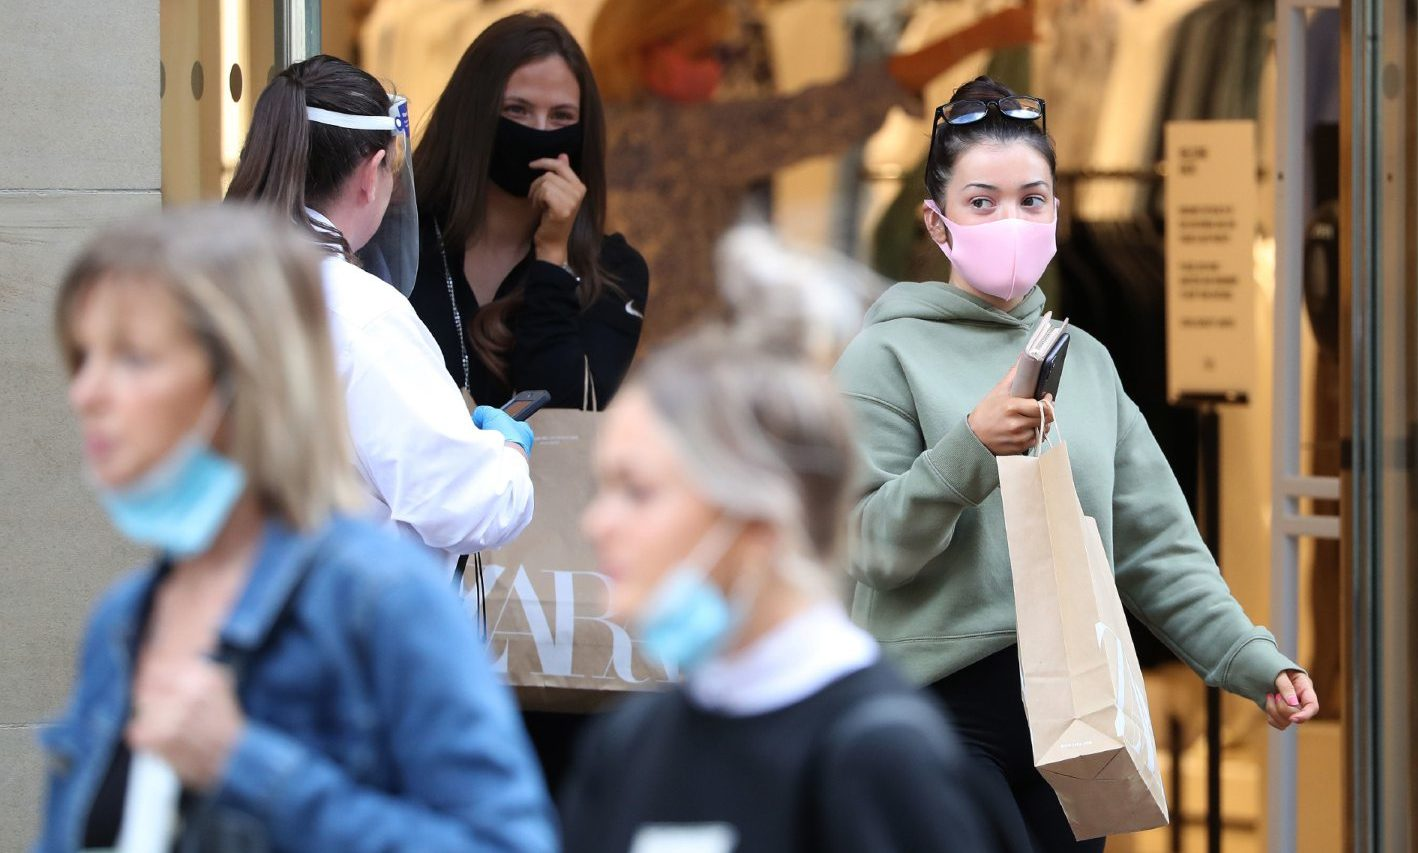 Shoppers return to stores across Scotland as new face mask rules are put in place.